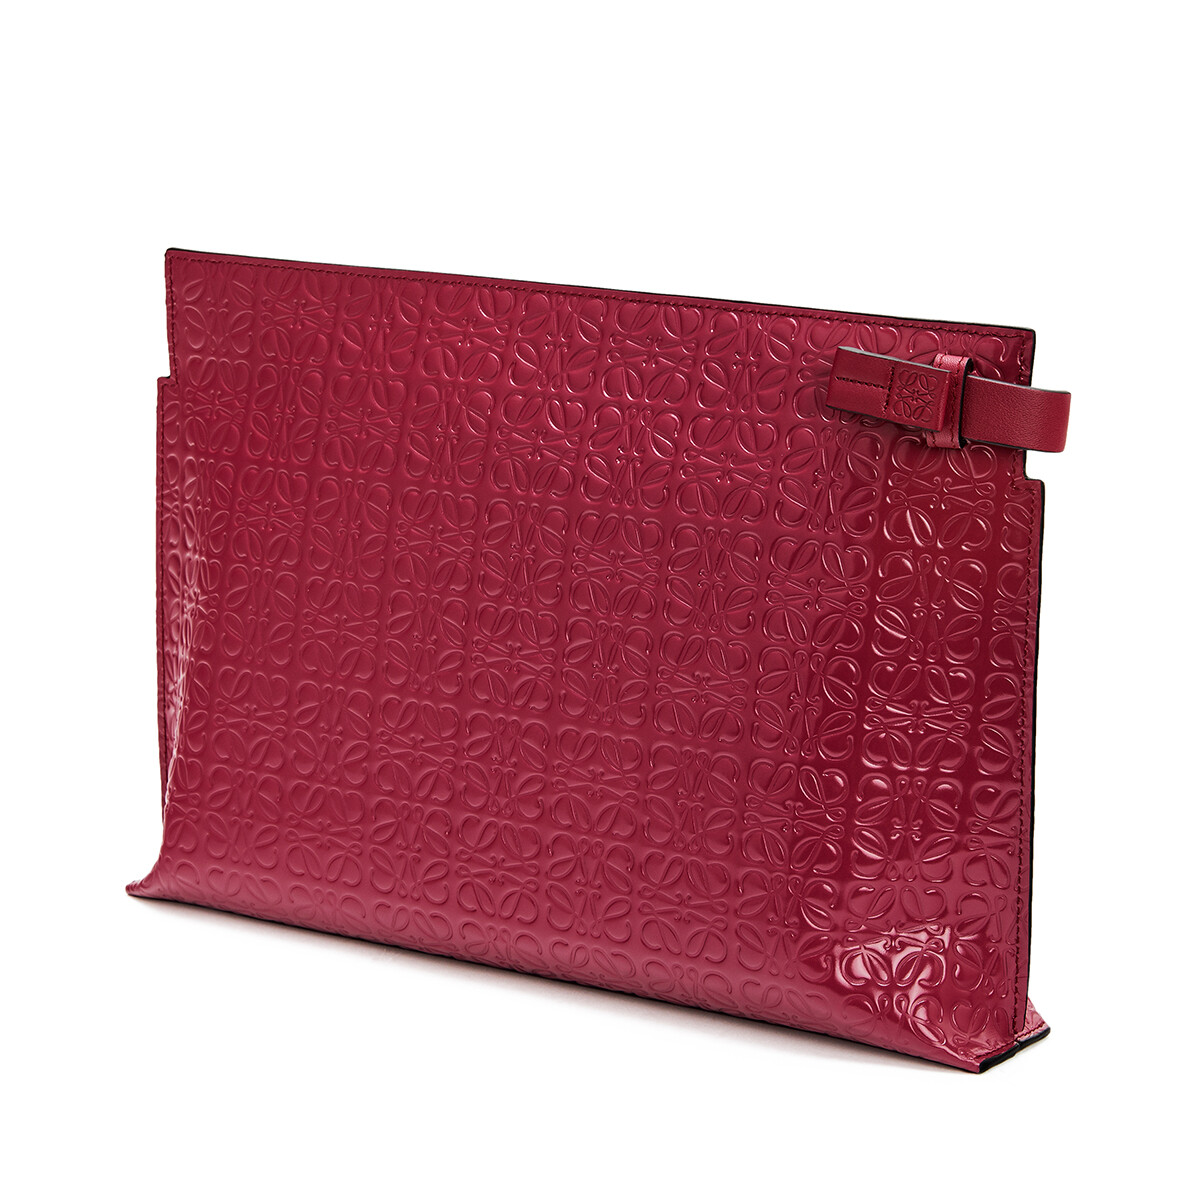 LOEWE T Pouch Repeat Raspberry front